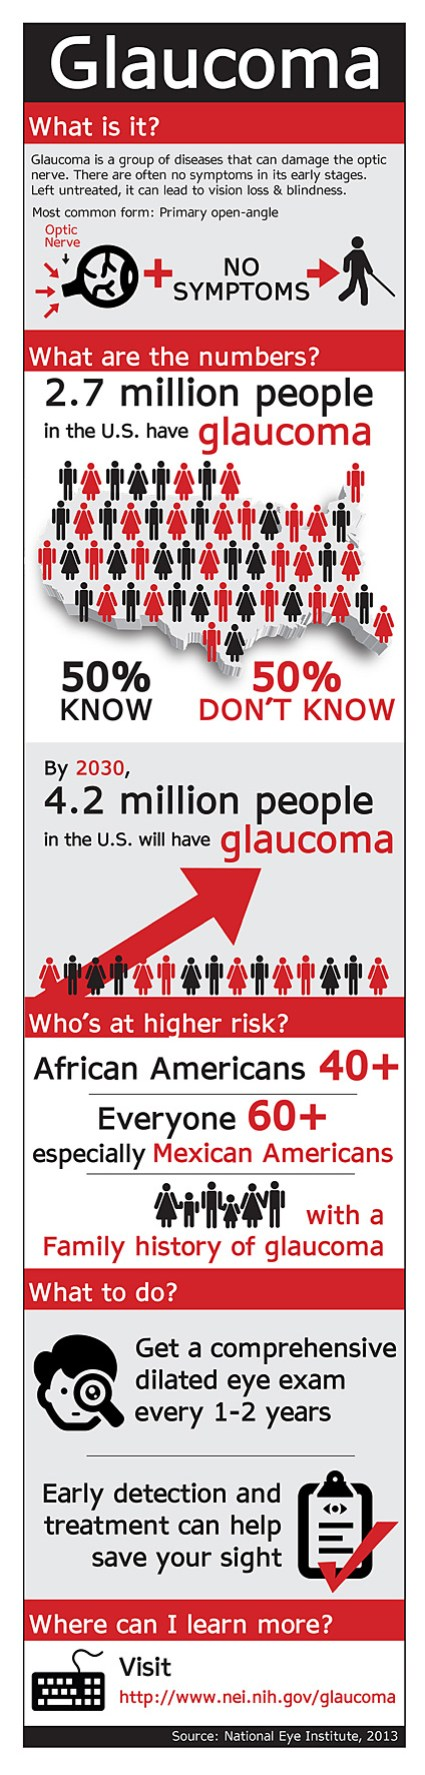 Glaucoma Infographic in English